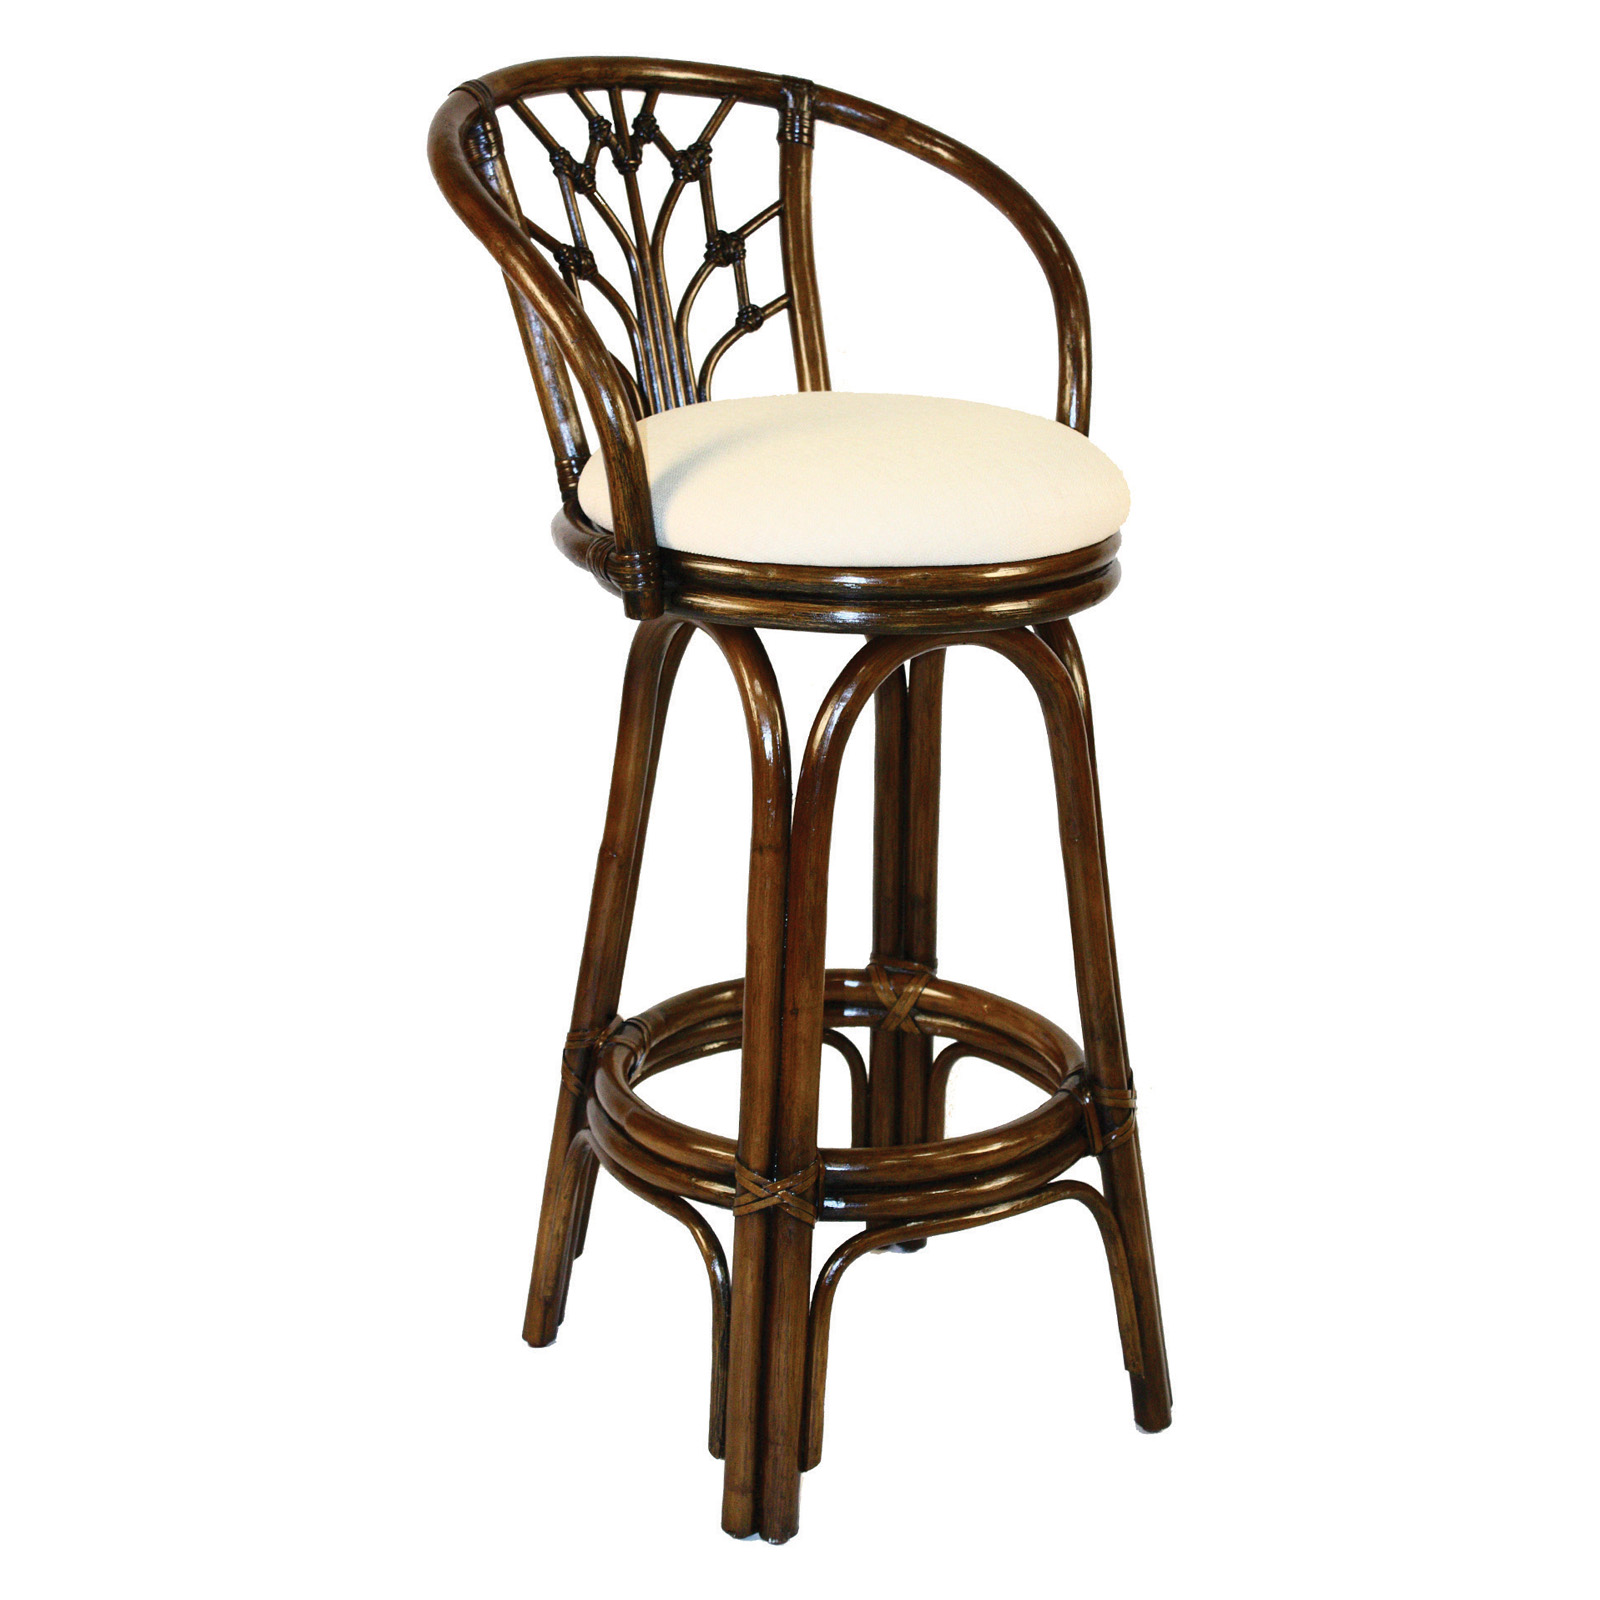 with height kitchen of bar set winsome iron and white cane stackable top swivel stools seat wicker full rattan antique bentwood stool wrought backs wooden counter grey barstools back size